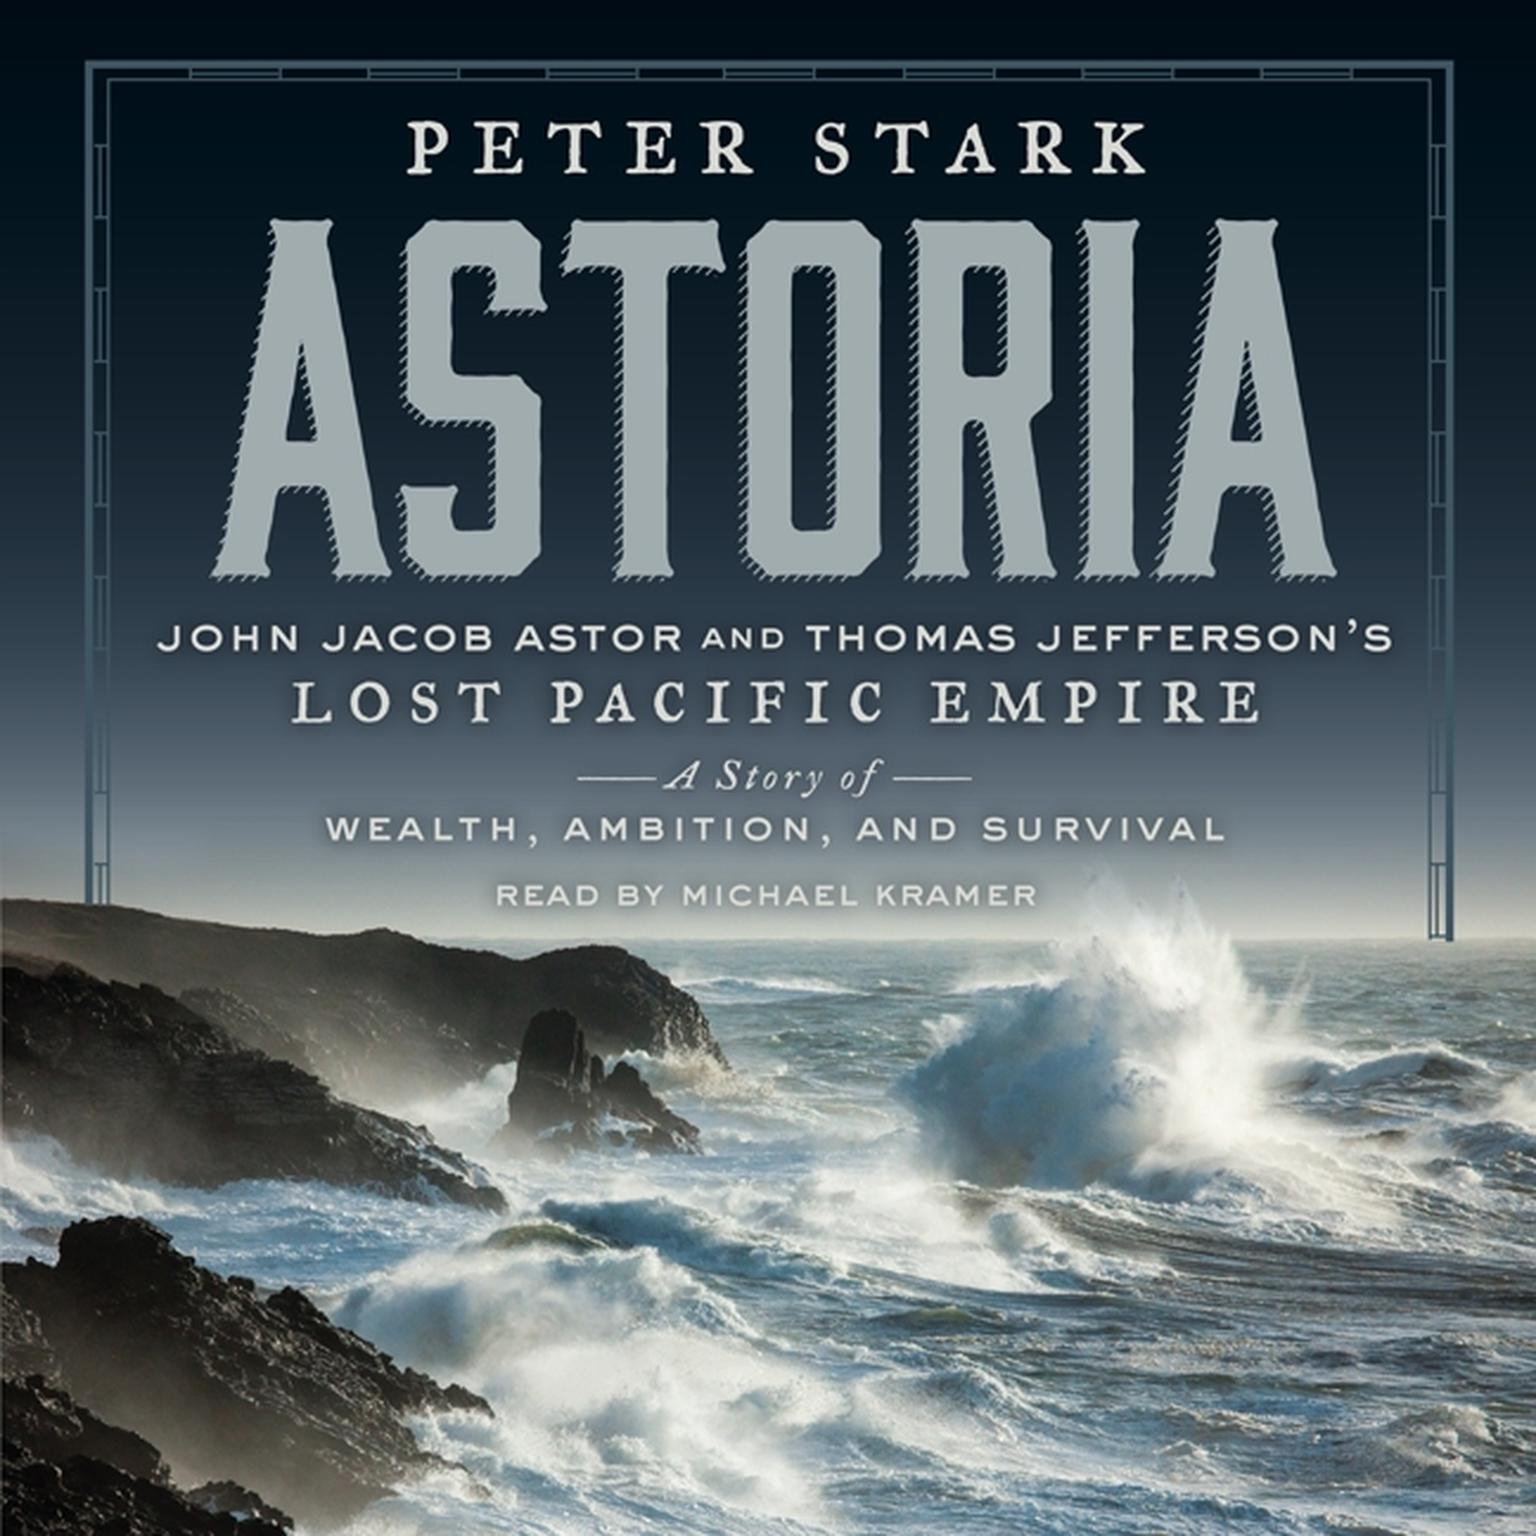 Printable Astoria: John Jacob Astor and Thomas Jefferson's Lost Pacific Empire: A Story of Wealth, Ambition, and Survival Audiobook Cover Art